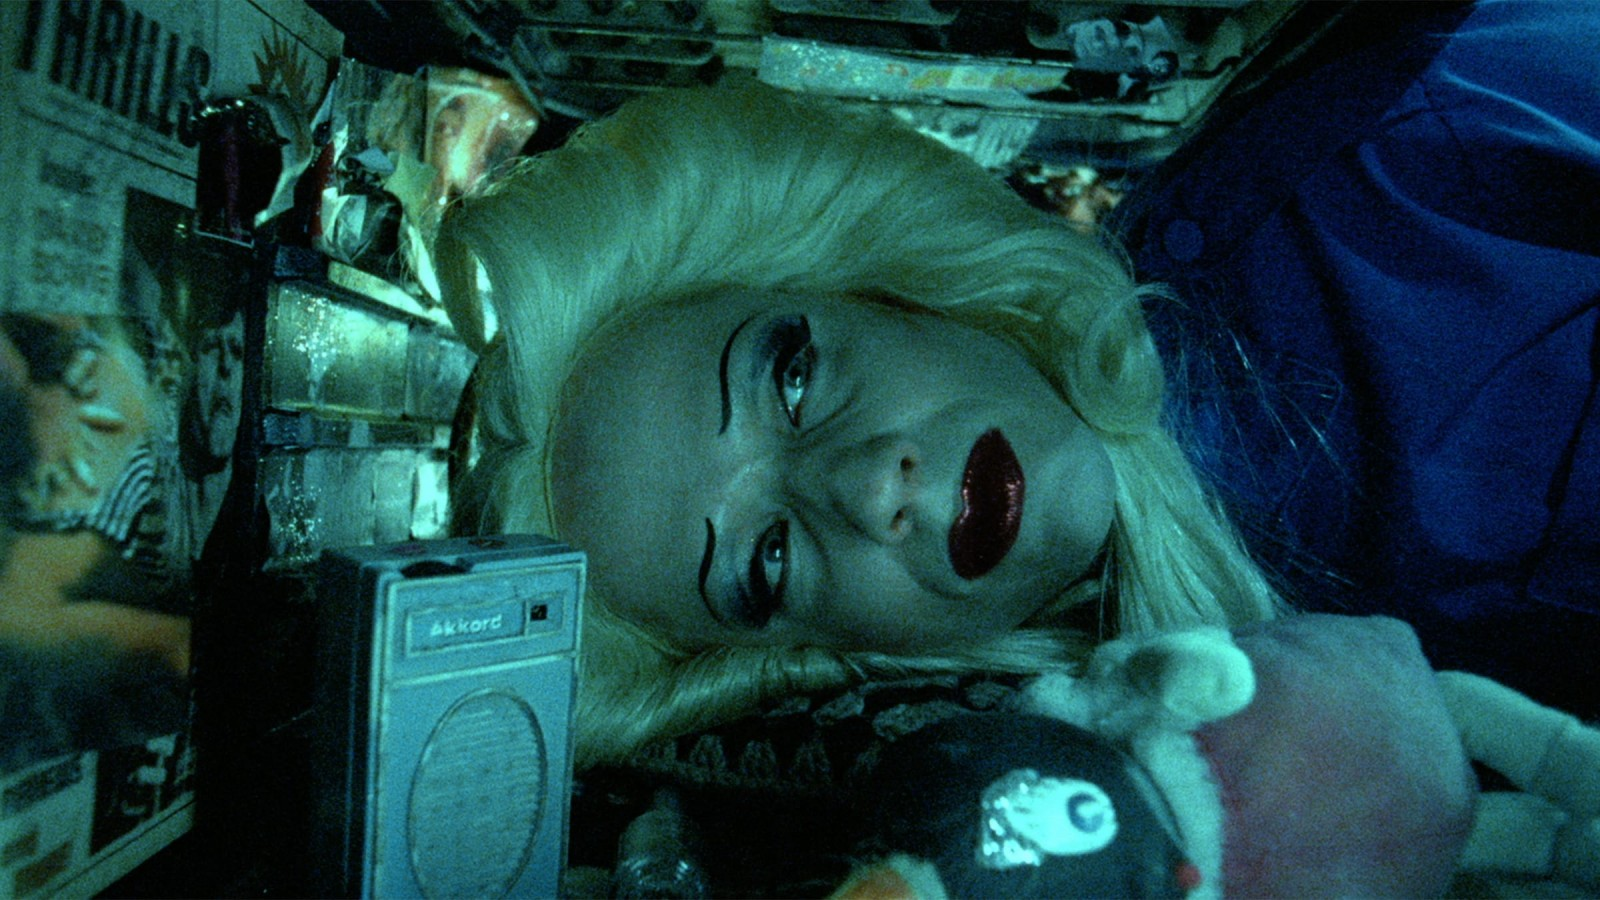 Hedwig and the Angry Inch: She Sings the Body Electric